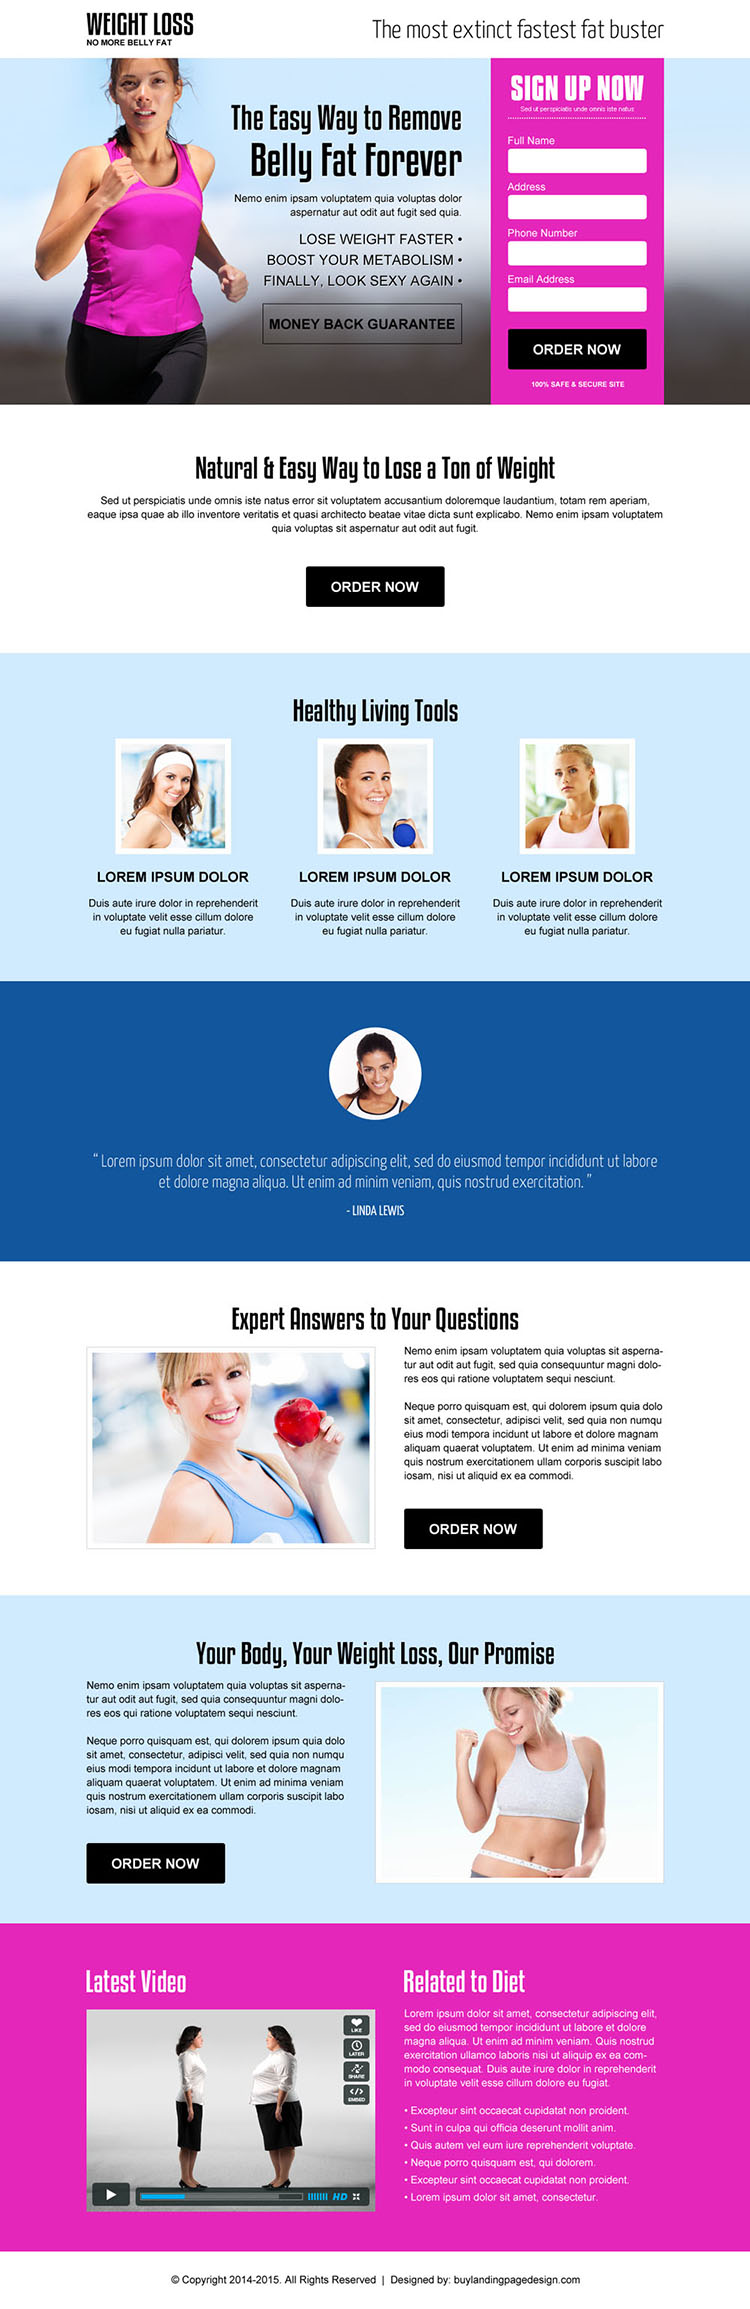 reduce belly fat weight loss effective responsive landing page design